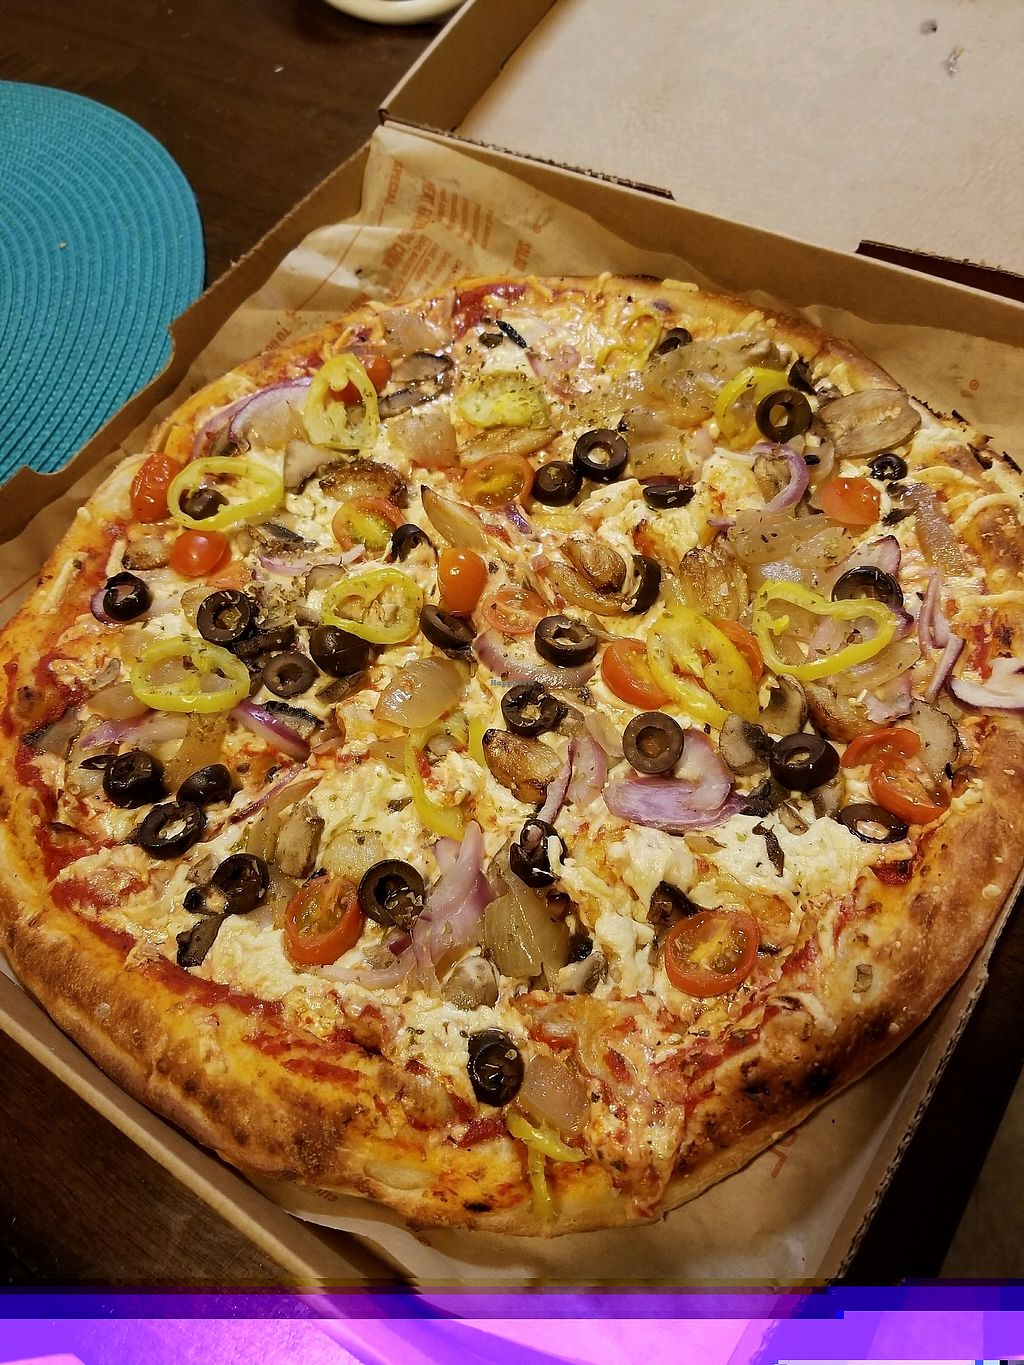 """Photo of Blaze Pizza  by <a href=""""/members/profile/VeganHammy"""">VeganHammy</a> <br/>Double crust with red sauce, Daiya, tomatoes, banana pepper, olives, sauteed onion, red onion, mushroom, roasted garlic pizza <br/> November 28, 2017  - <a href='/contact/abuse/image/106105/329930'>Report</a>"""